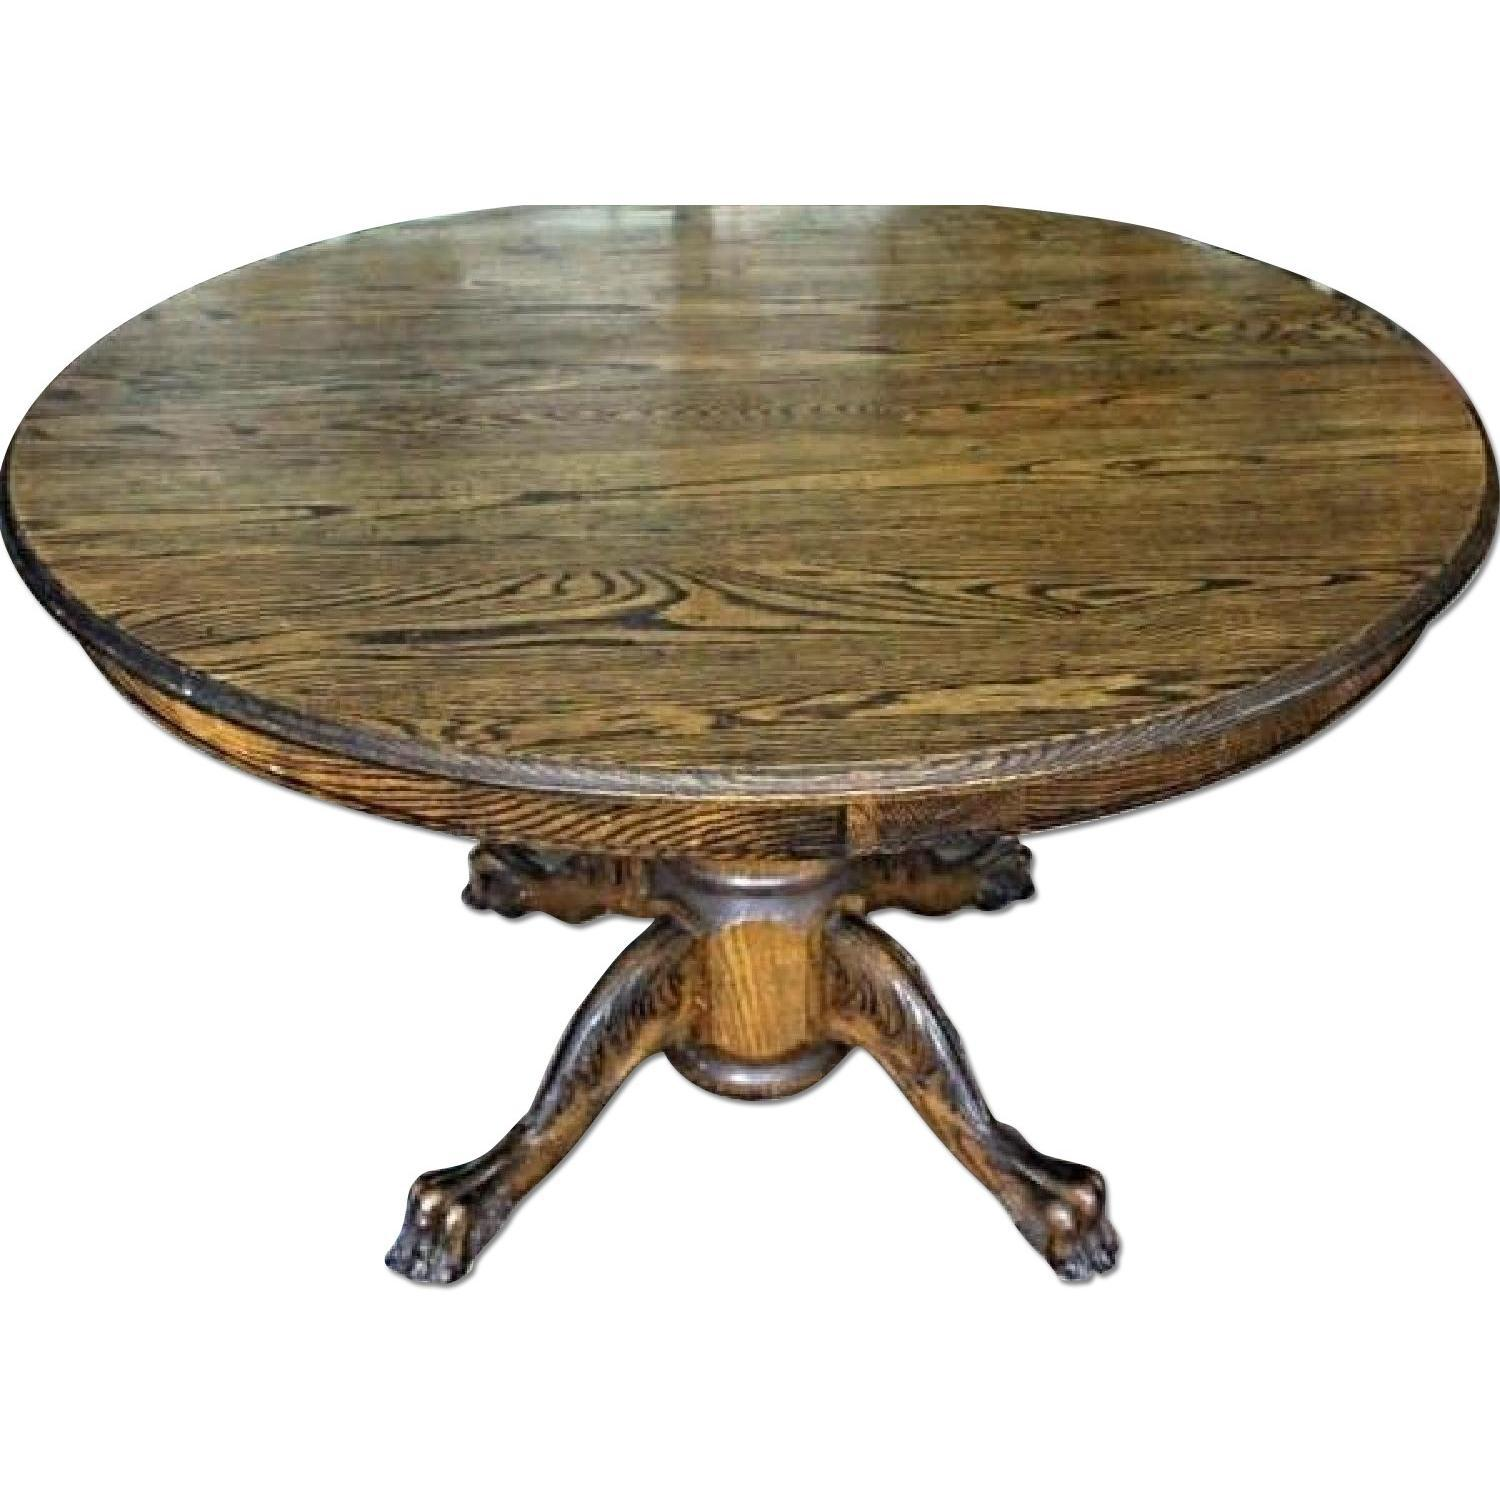 Charmant Early American Oak Claw Foot Dining Table For Sale   Image 5 Of 6